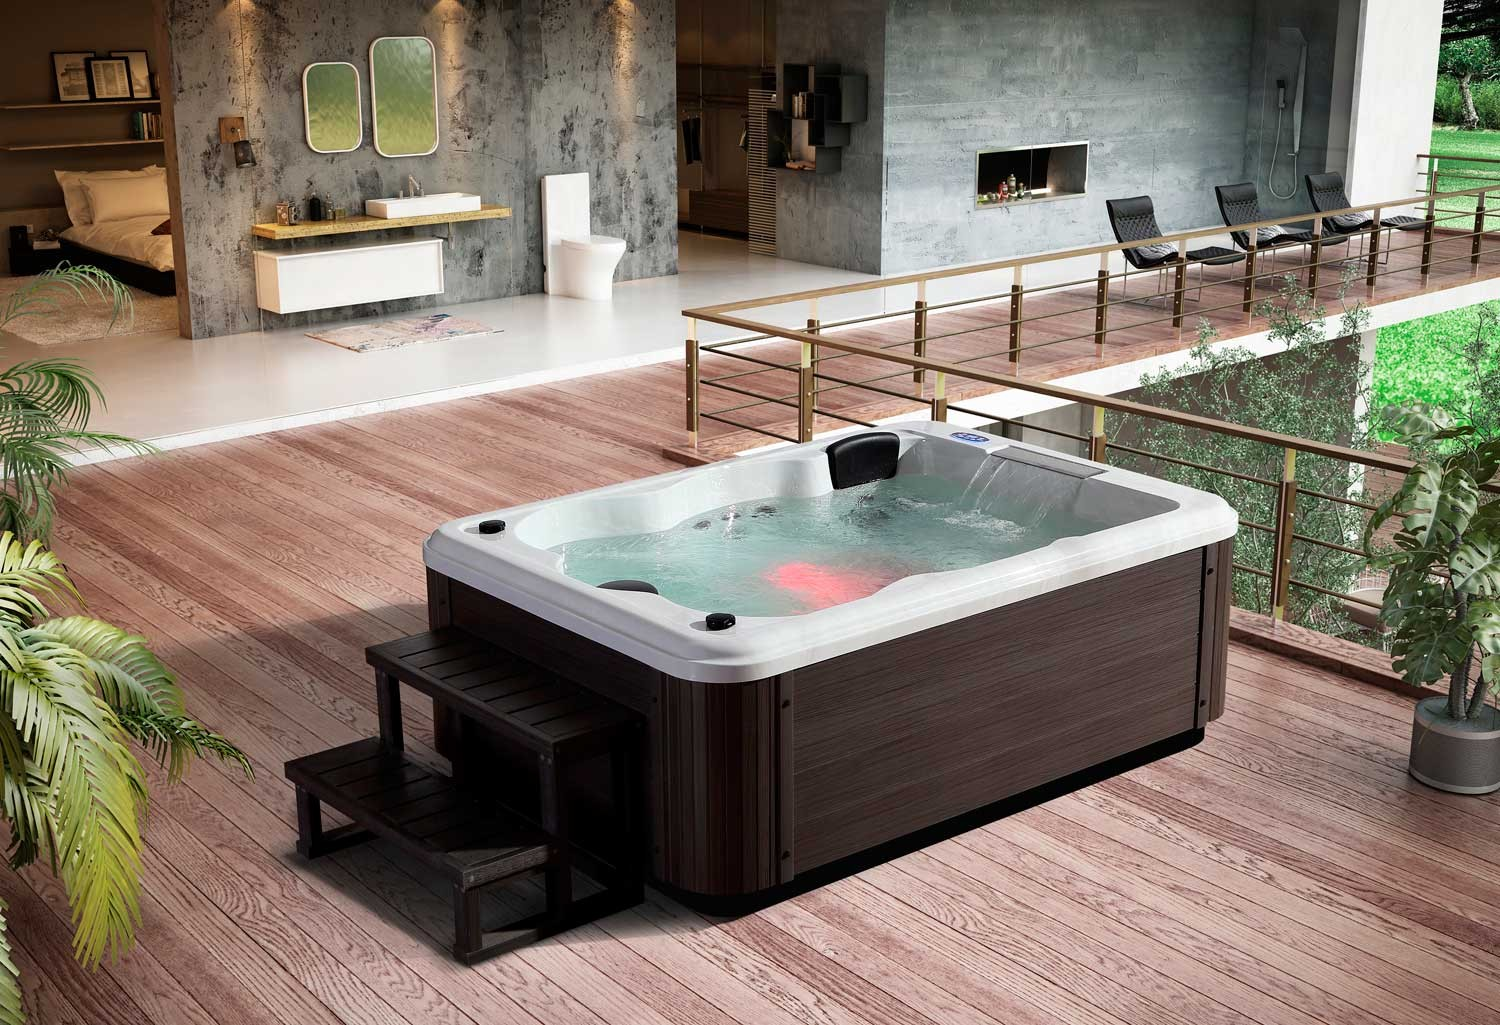 prix jacuzzi extrieur latest gallery of prix jacuzzi exterieur places beau jacuzzi extrieur. Black Bedroom Furniture Sets. Home Design Ideas